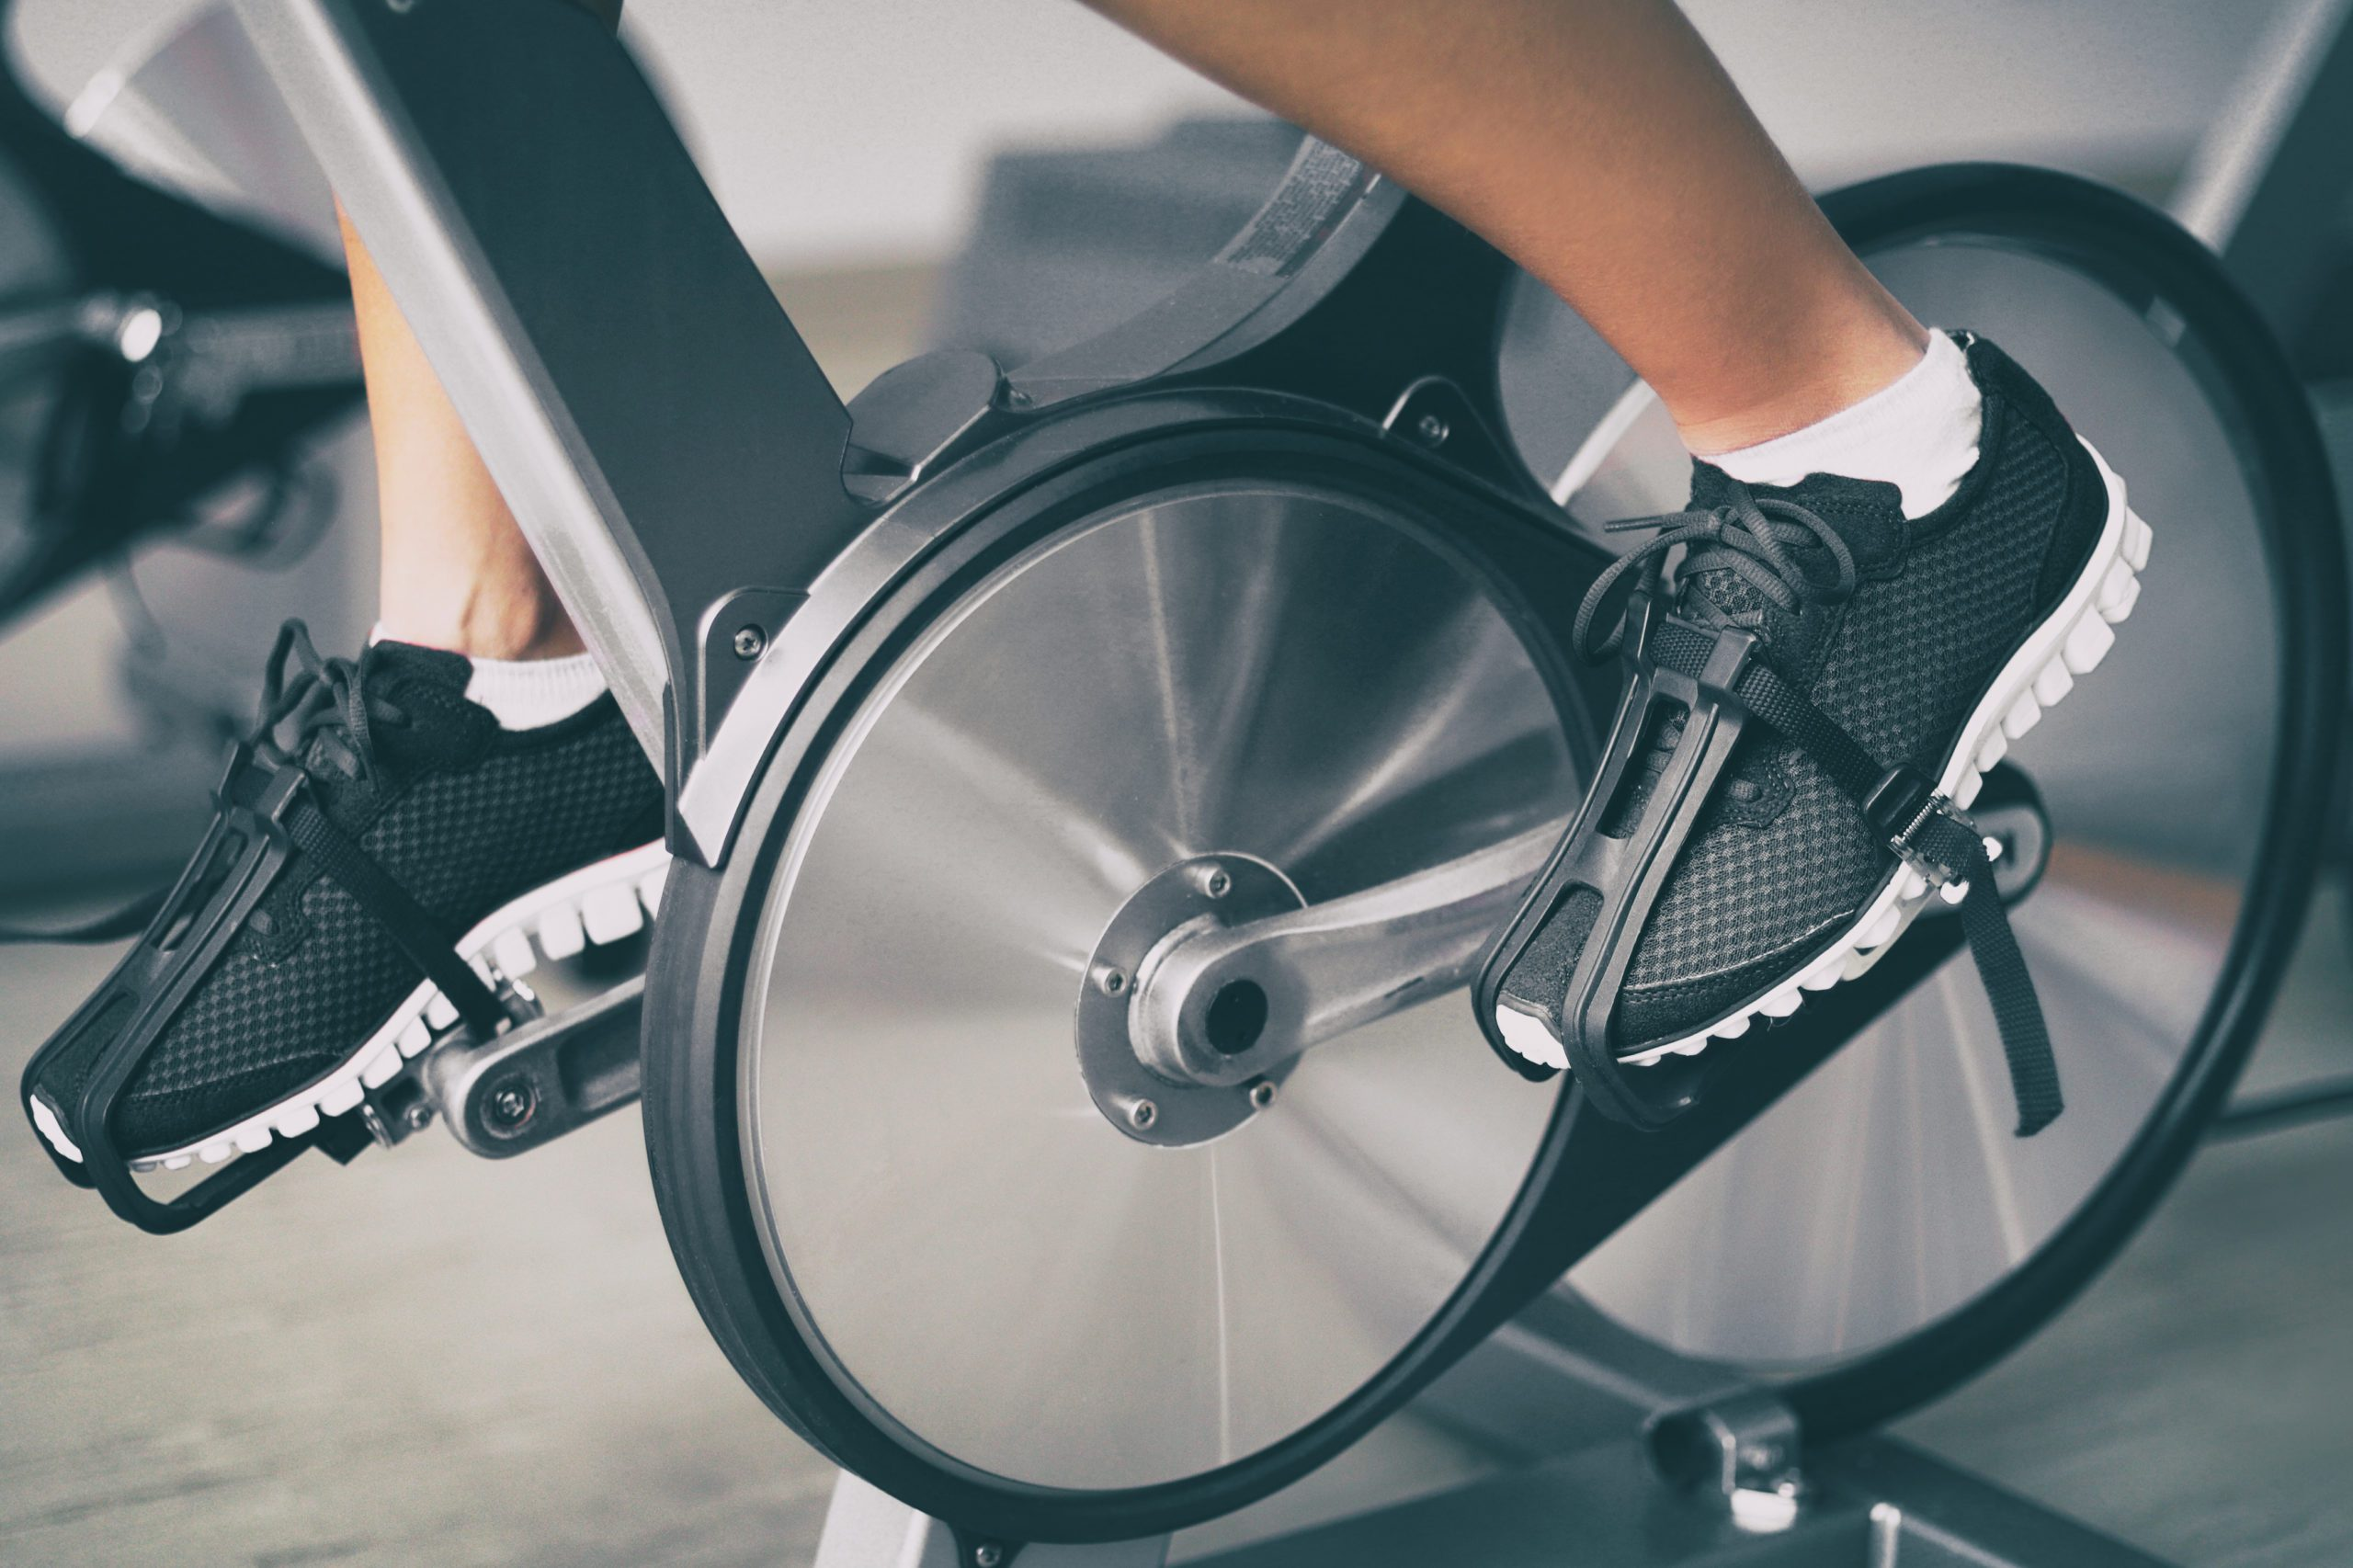 Fitness,machine,at,home,woman,biking,on,indoor,cycling,stationary